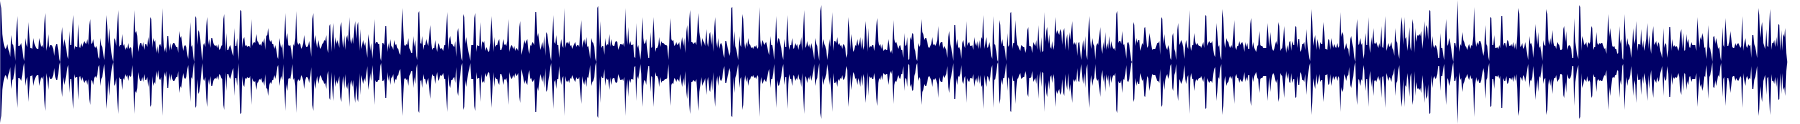 waveform of track #78344